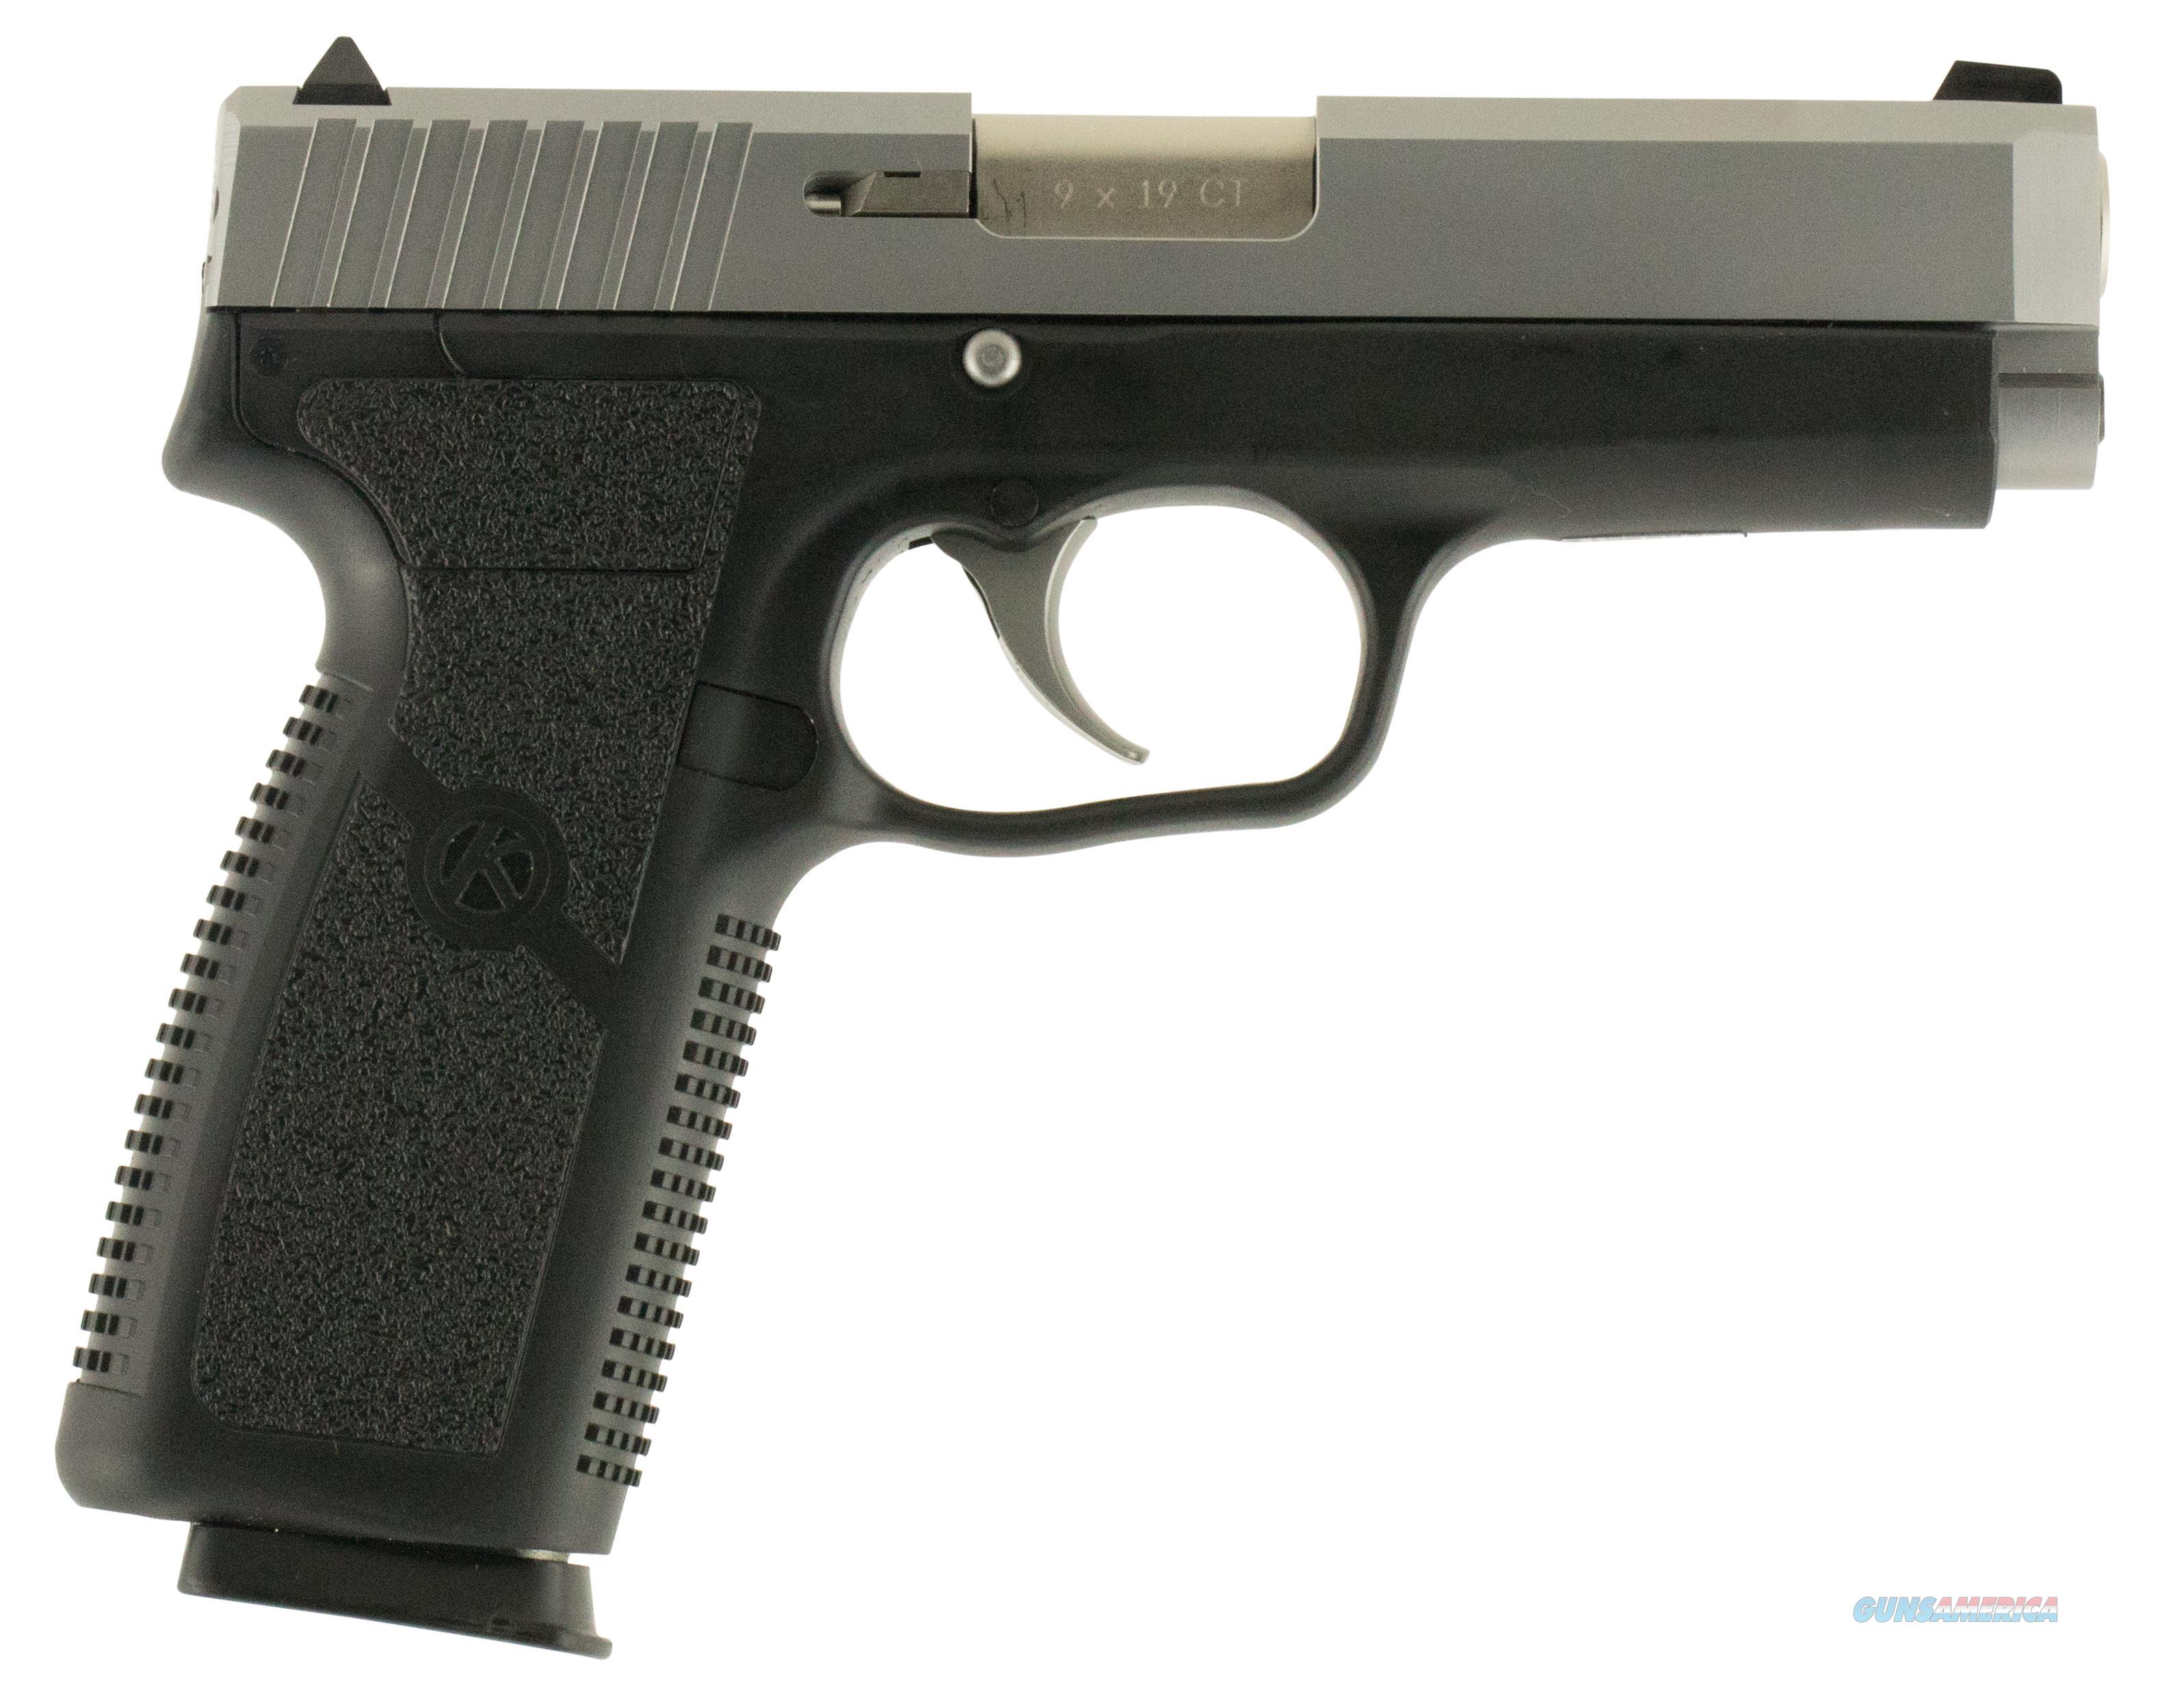 KAHR ARMS CT9 9MM 3.96 POLY REAR DAY W/ FRONT NS CT9093N  Guns > Pistols > Kahr Pistols